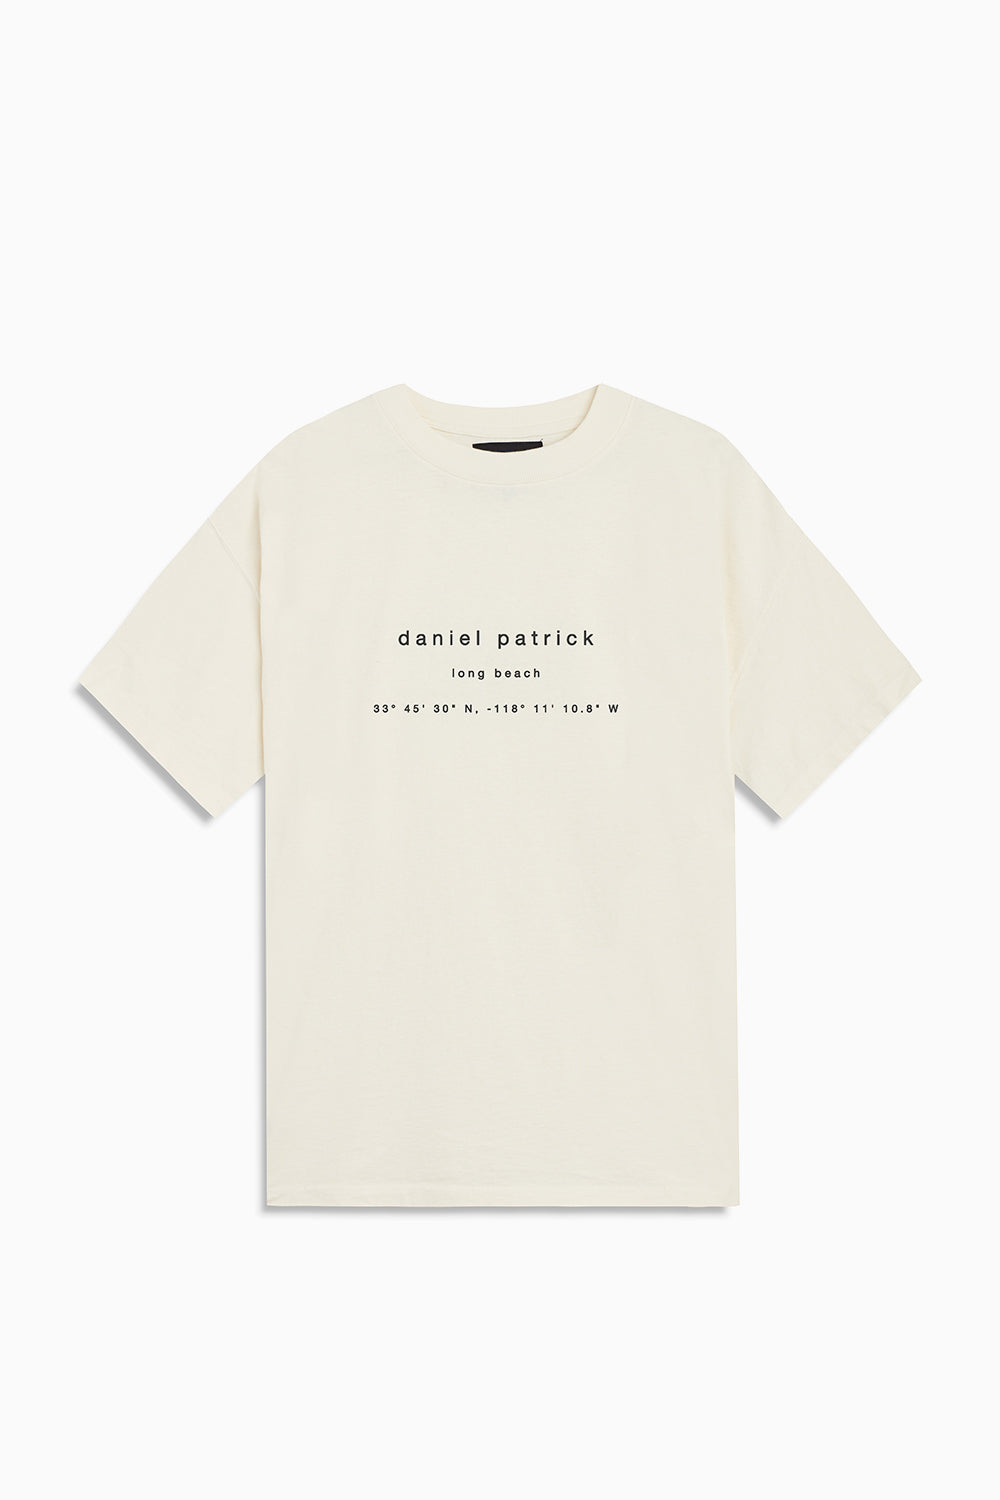 long beach souvenir tee / natural